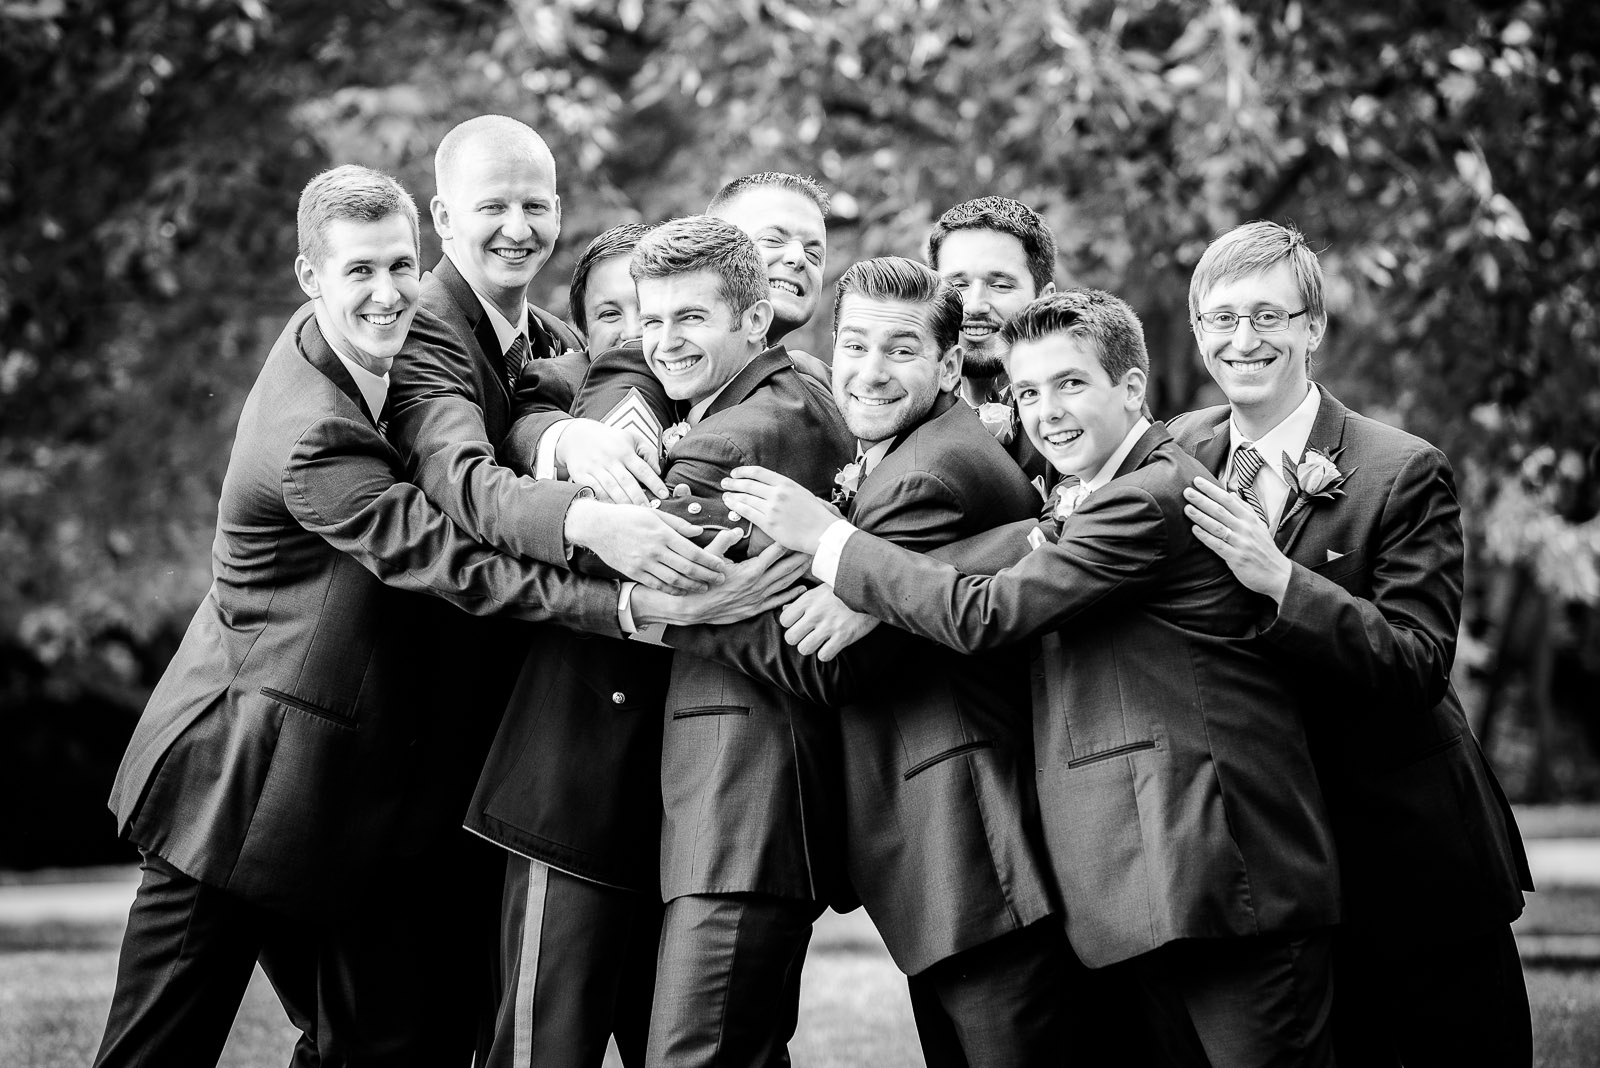 Eric_and_Christy_Photography_Blog_Wedding_Kelly_Michael-24